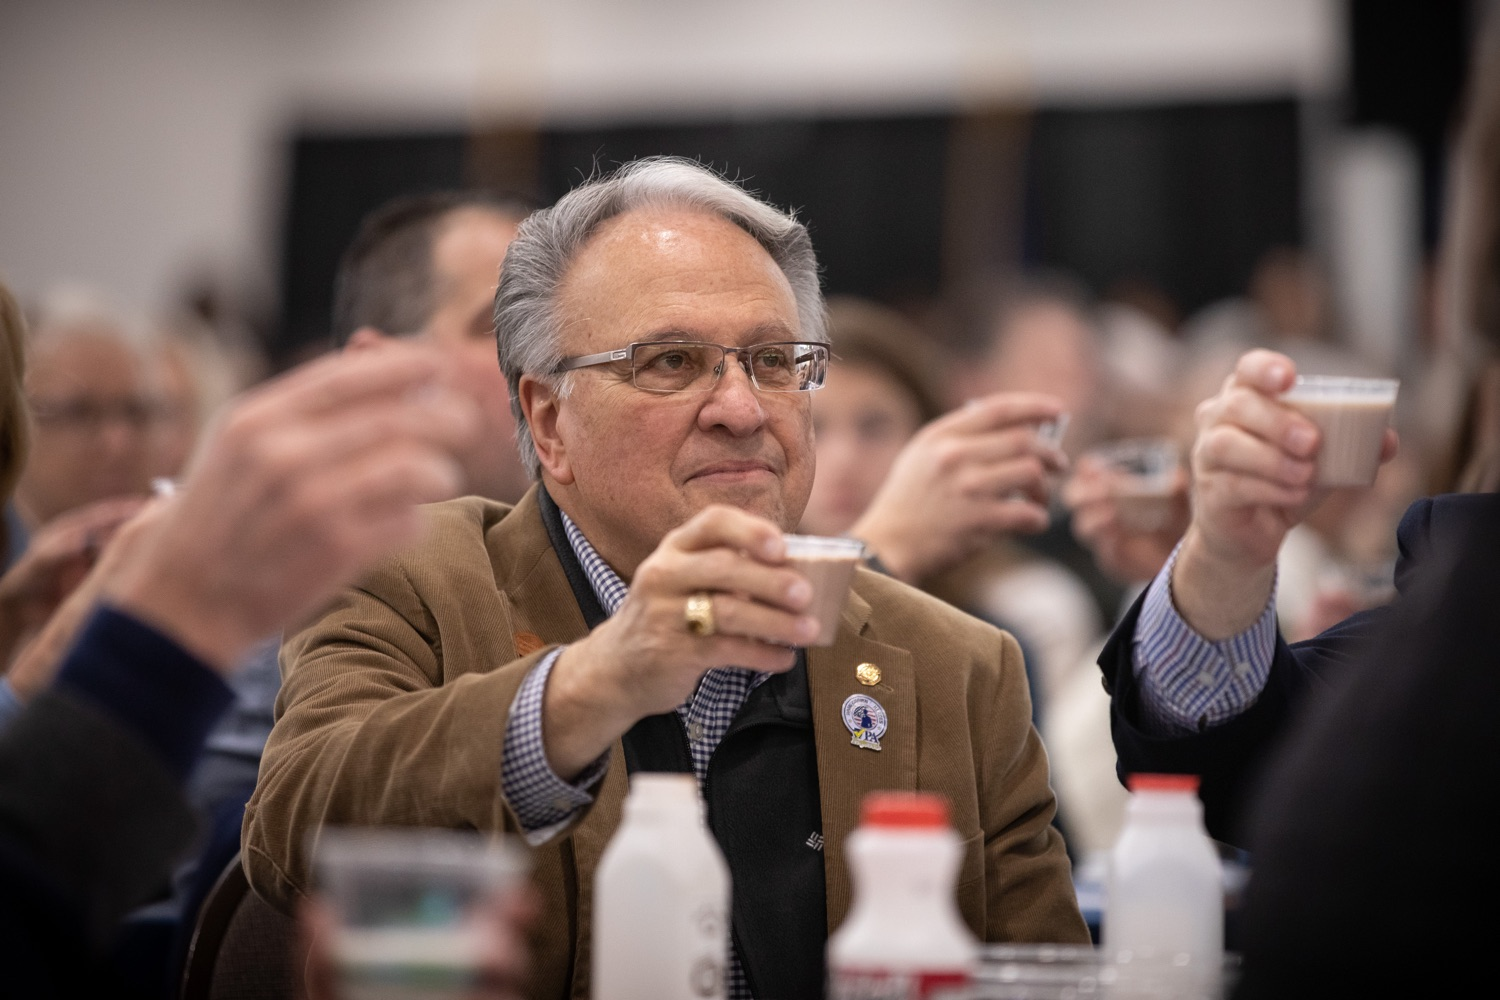 "<a href=""https://filesource.wostreaming.net/commonwealthofpa/photo/17650_agric_public_officials_day_dz_002.jpg"" target=""_blank"">⇣ Download Photo<br></a>Rep. Eddie Day Pashinski  enjoying the Milk Toast at Public Officials Day.  Addressing nearly 800 public officials at the Pennsylvania Farm Show today, Agriculture Secretary Russell Redding announced the opening of the last grant program made possible by the 2019 PA Farm Bill. The $1 million Farm Vitality Grant Program aims to enhance the long-term health and vitality of Pennsylvanias family farms. Harrisburg, PA  January 08, 2020"